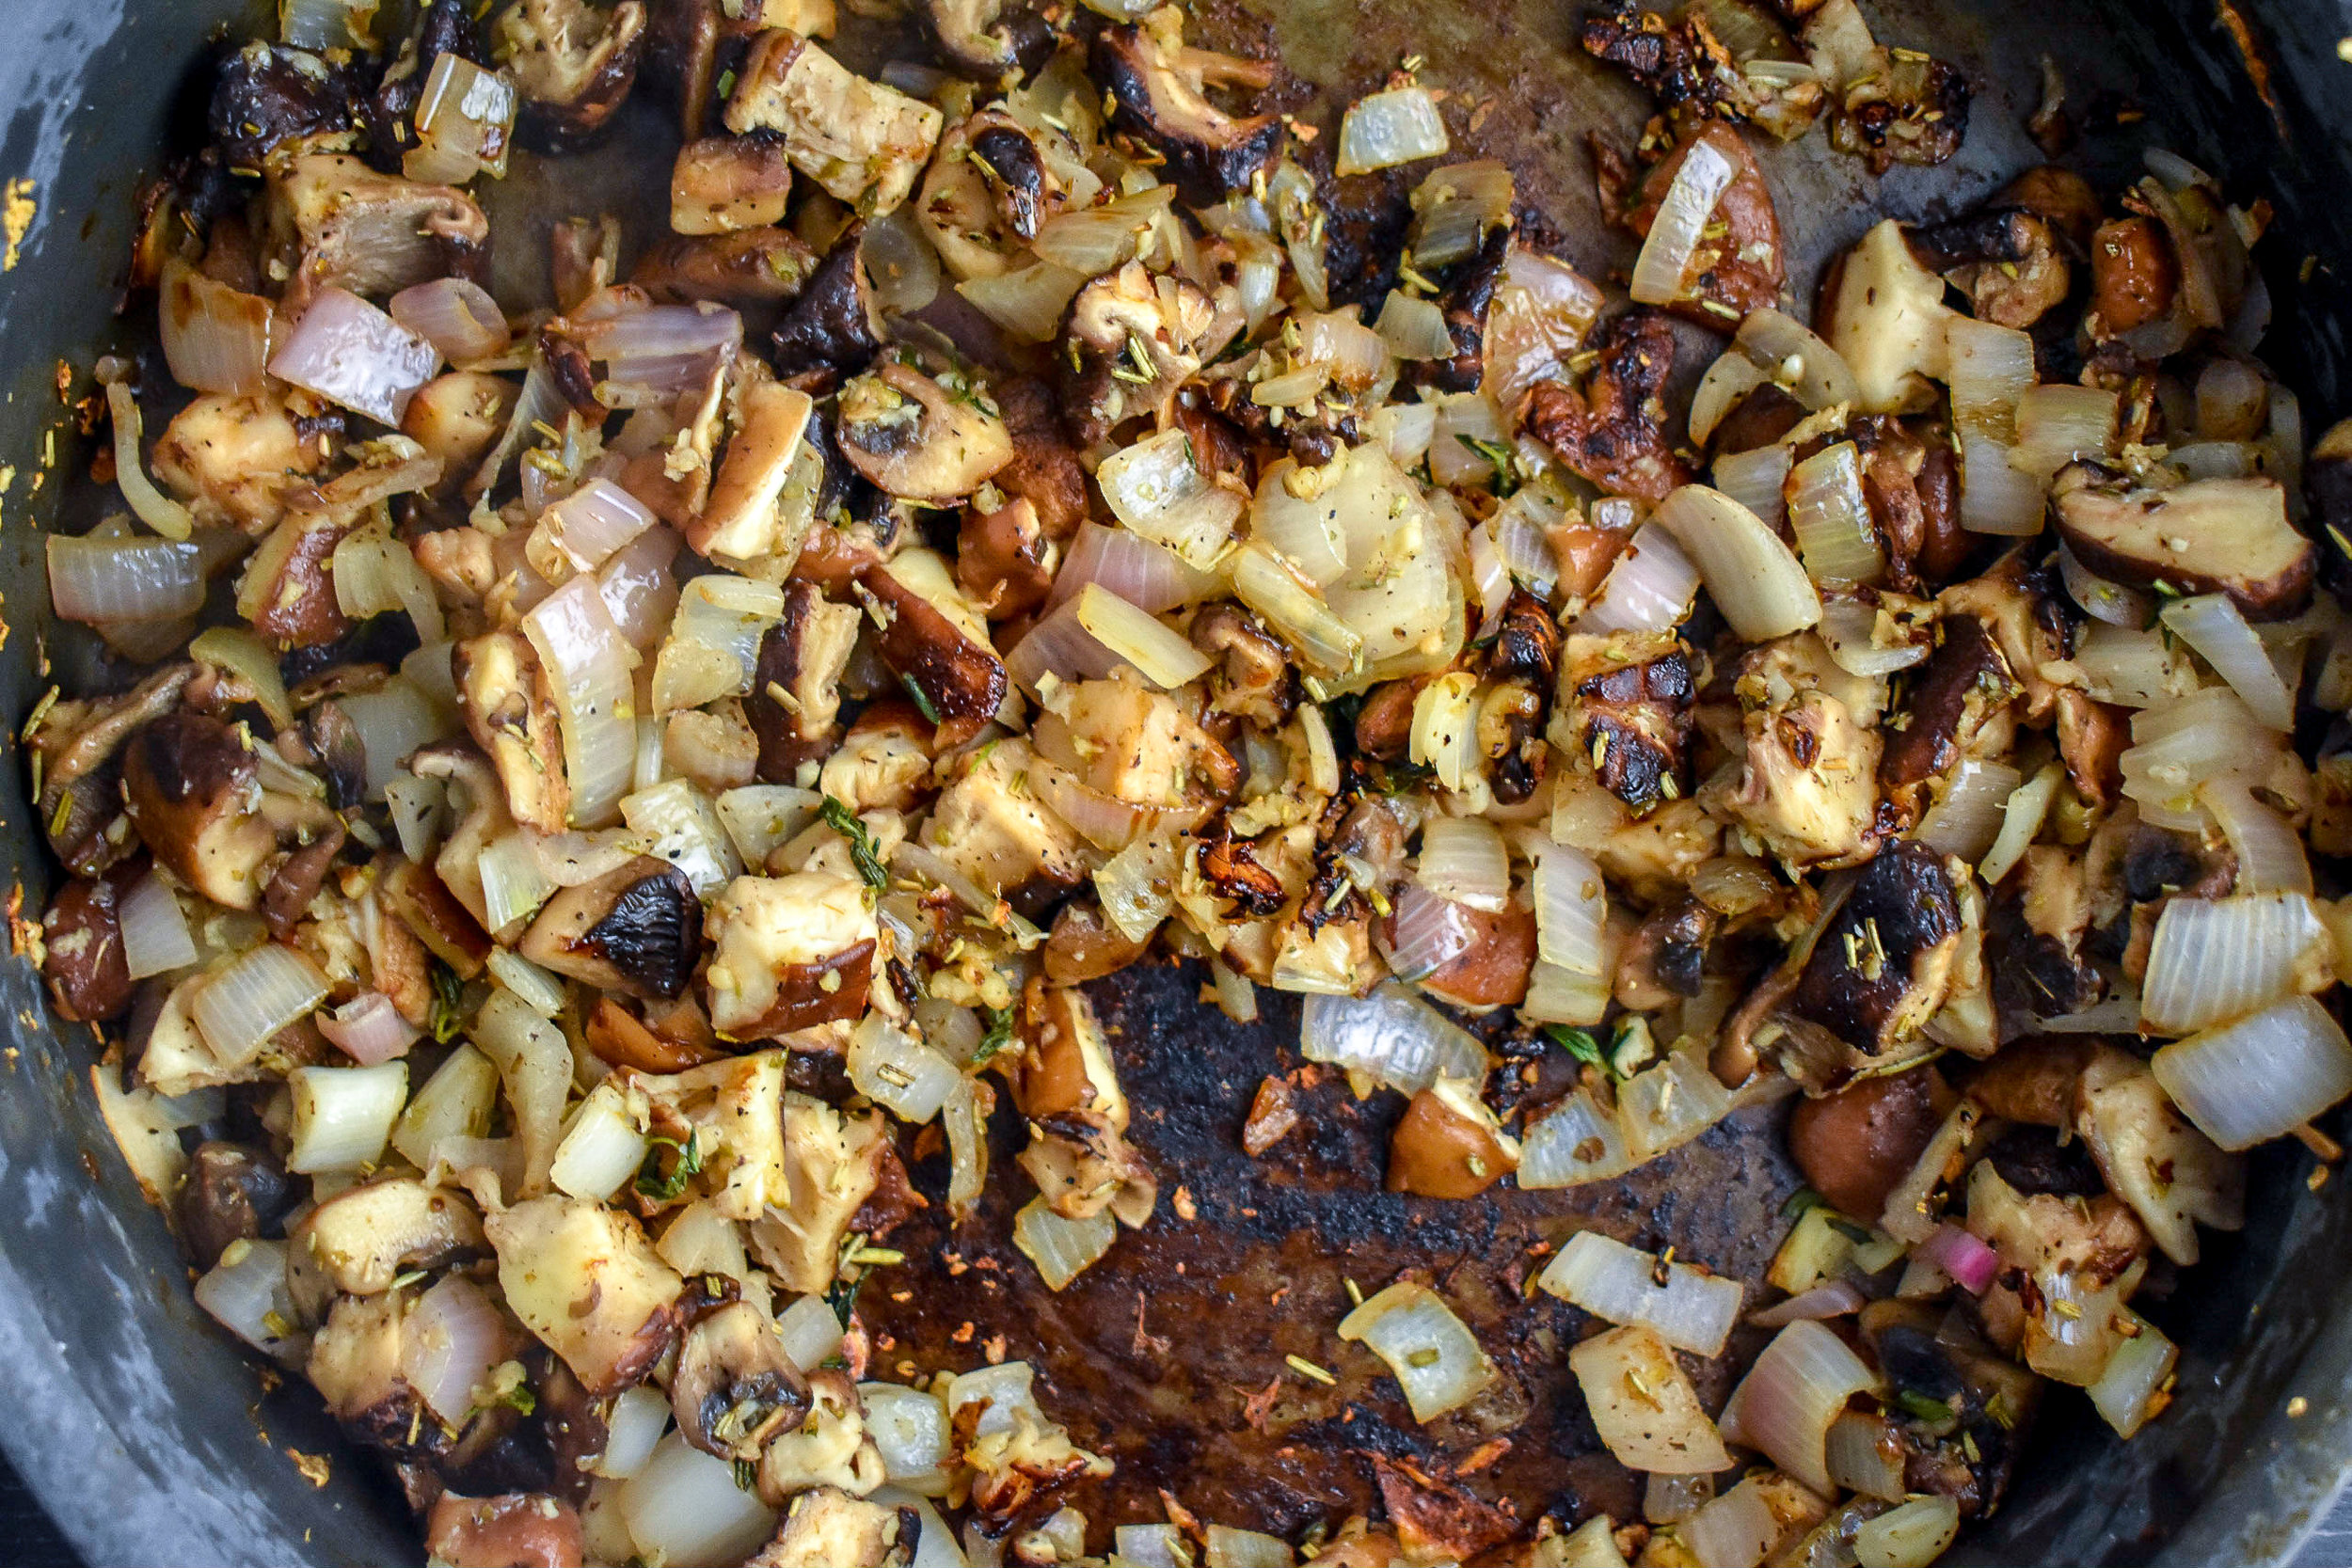 1. Add vegan butter to large frying pan over medium heat. Once melted, add in shallots + garlic, cook for five minutes. Next, add in the chopped mushrooms and cook for another 2-3 minutes until it starts to soften.